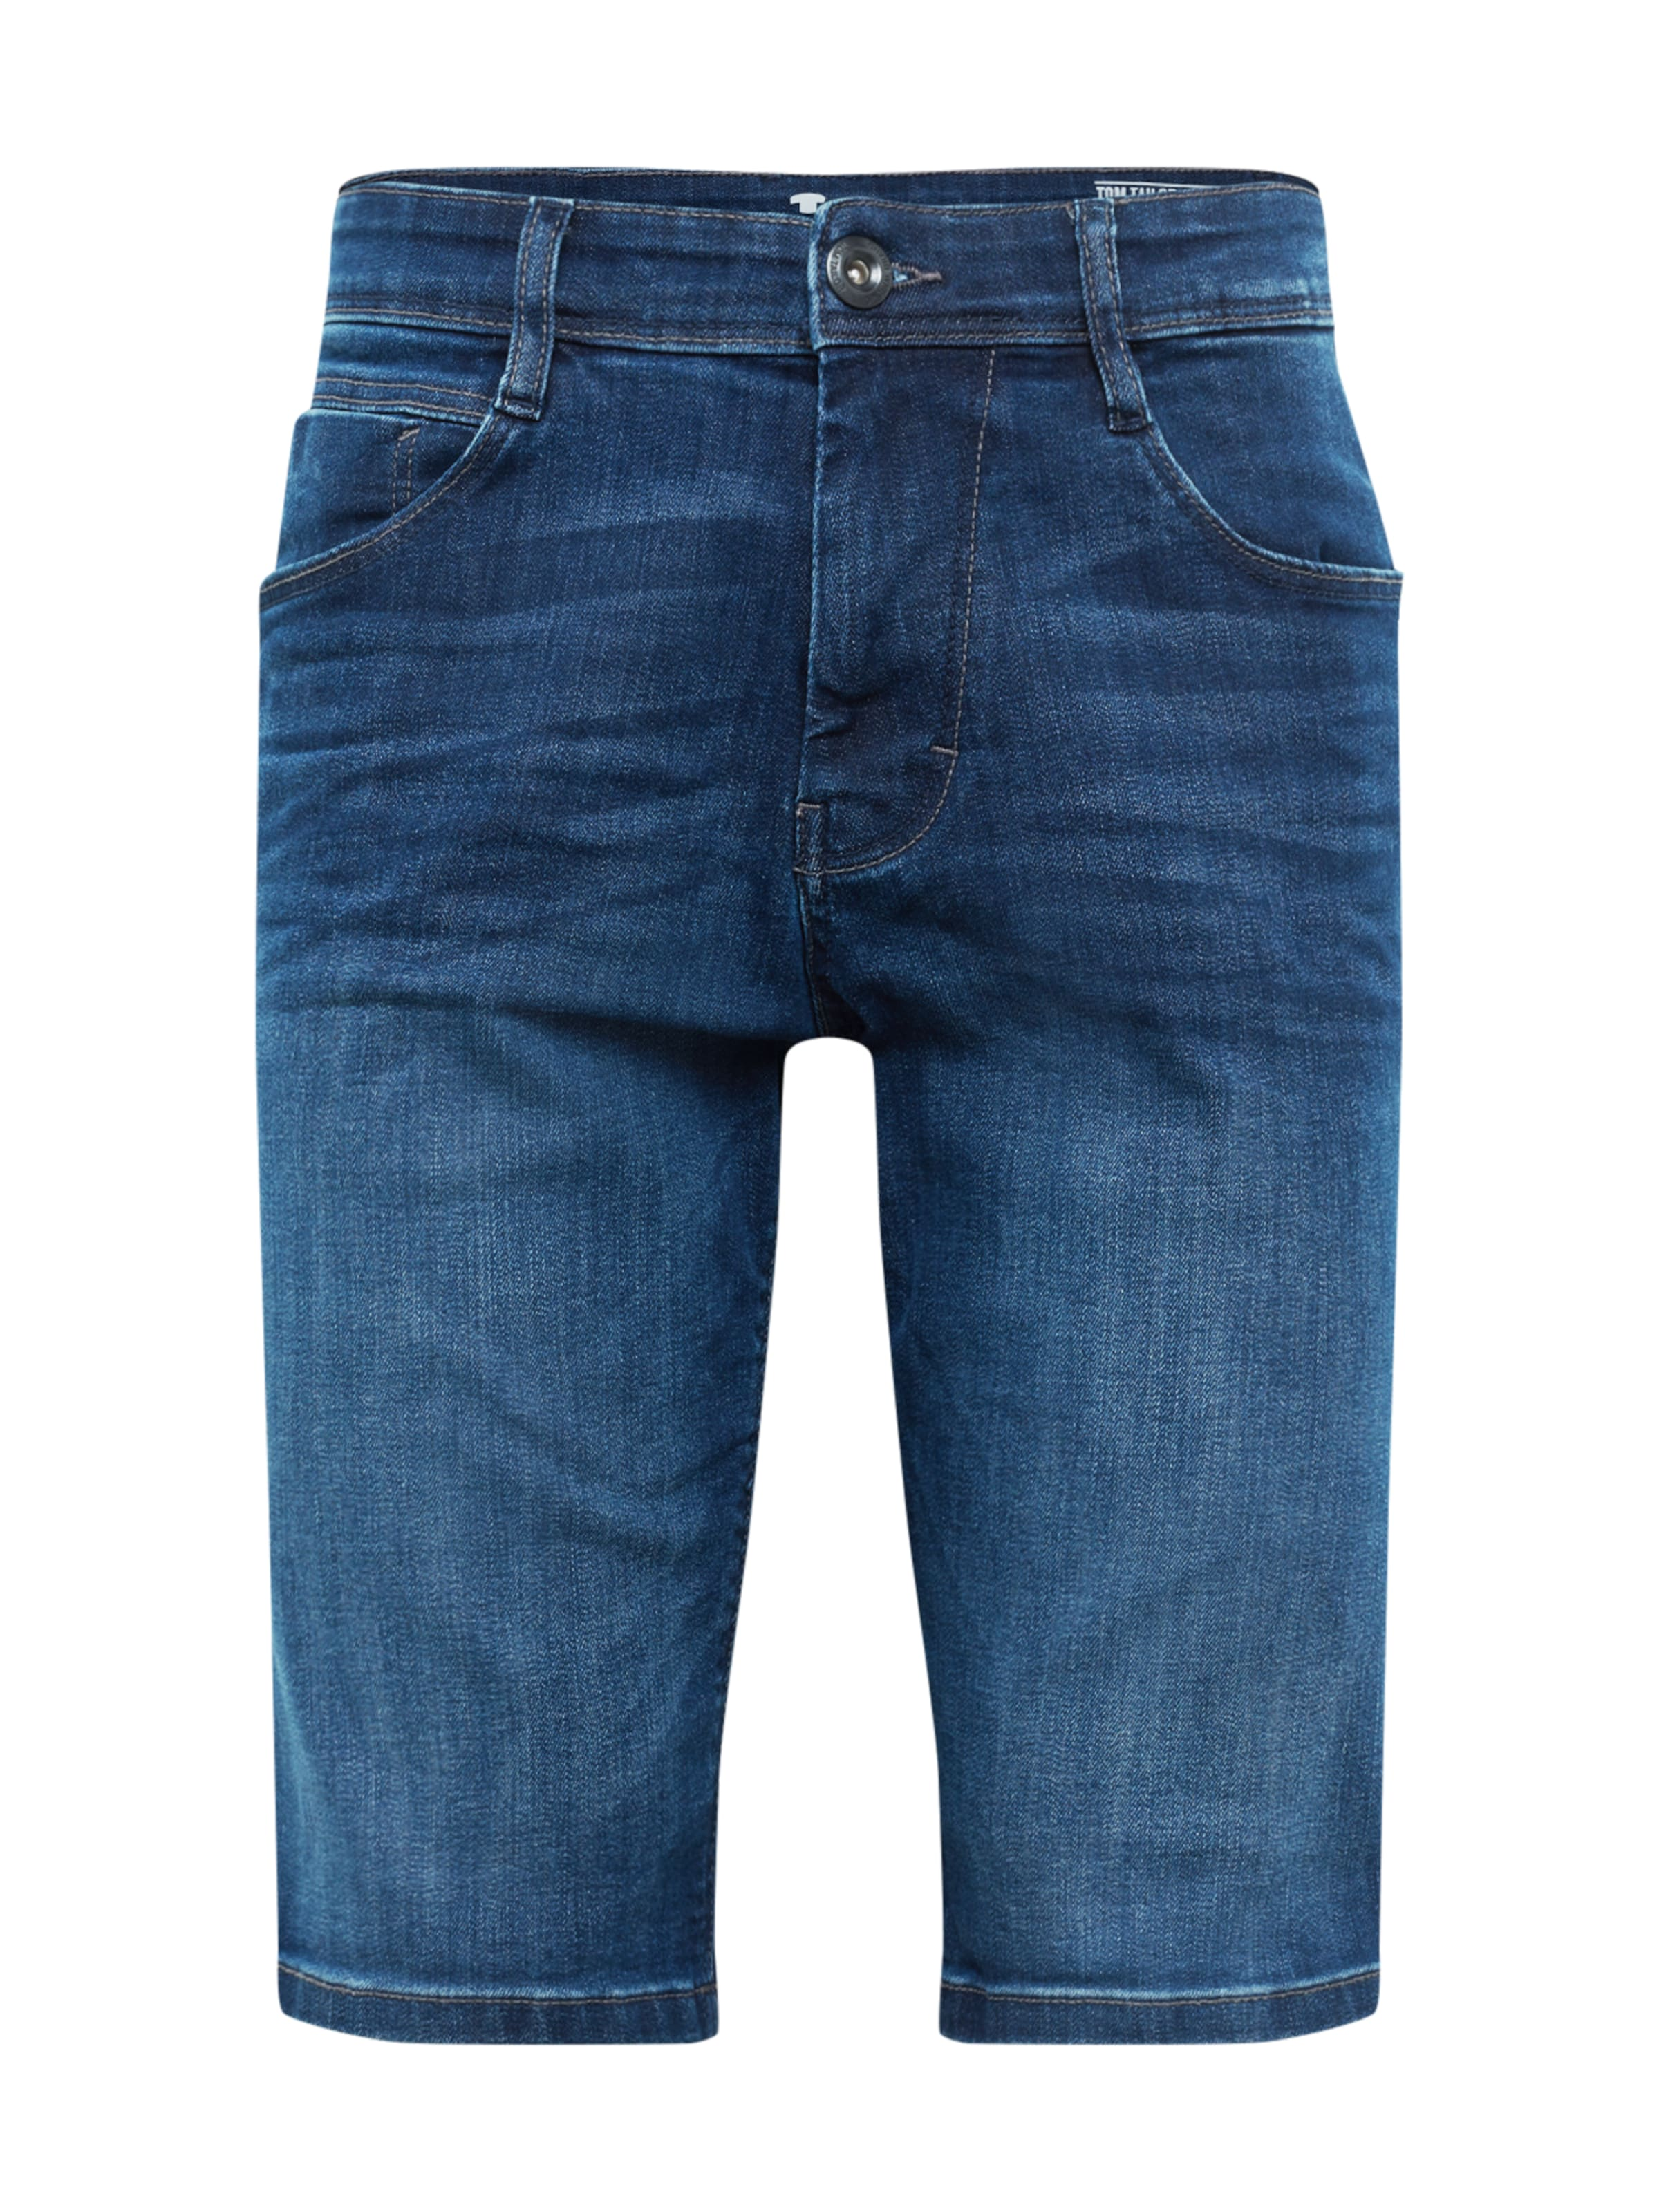 Bleu Denim Jean Tom Tailor En 3JclF1u5TK